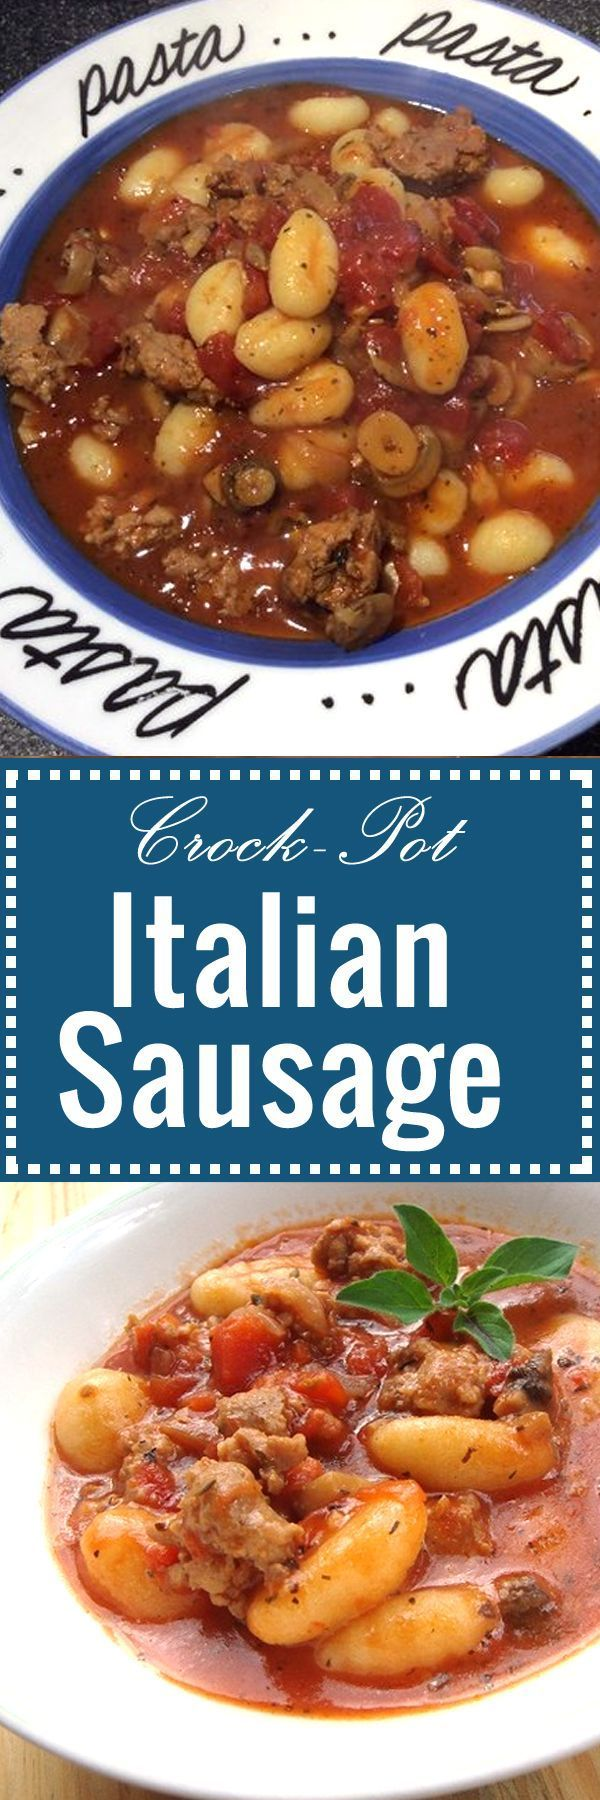 Italian Sausage Casserole - Crock-Pot recipe with ingredients like gnocchi, tomatoes, onions, select spices and of course sausages. So YUMMY! For more info, please visit http://www.recipezazz.com/